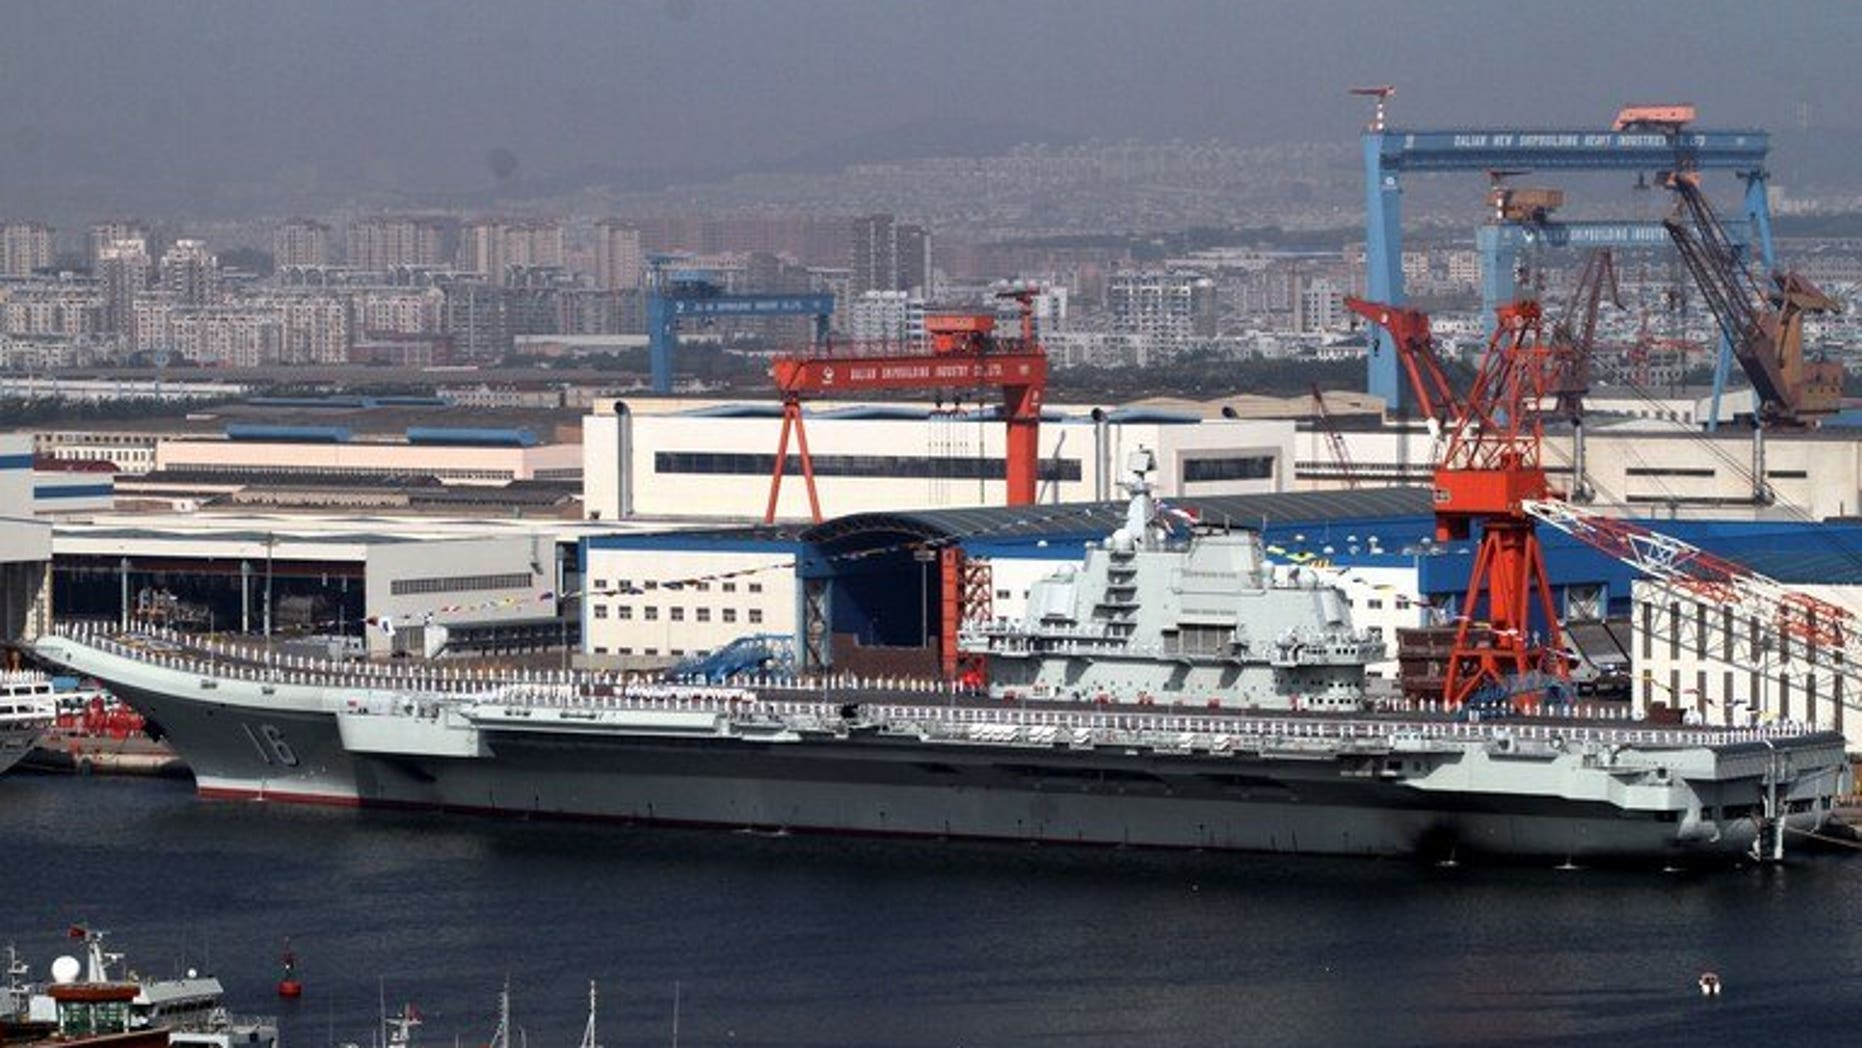 """China's first aircraft carrier, the """"Liaoning"""" sits berthed at the naval base in Dalian, northeast China's Liaoning province on September 25, 2012. No-one can contain China's rise, a leading Beijing foreign policy thinker said Tuesday, warning Manila and Tokyo that they had been mistakenly emboldened by Washington in territorial disputes with his country."""